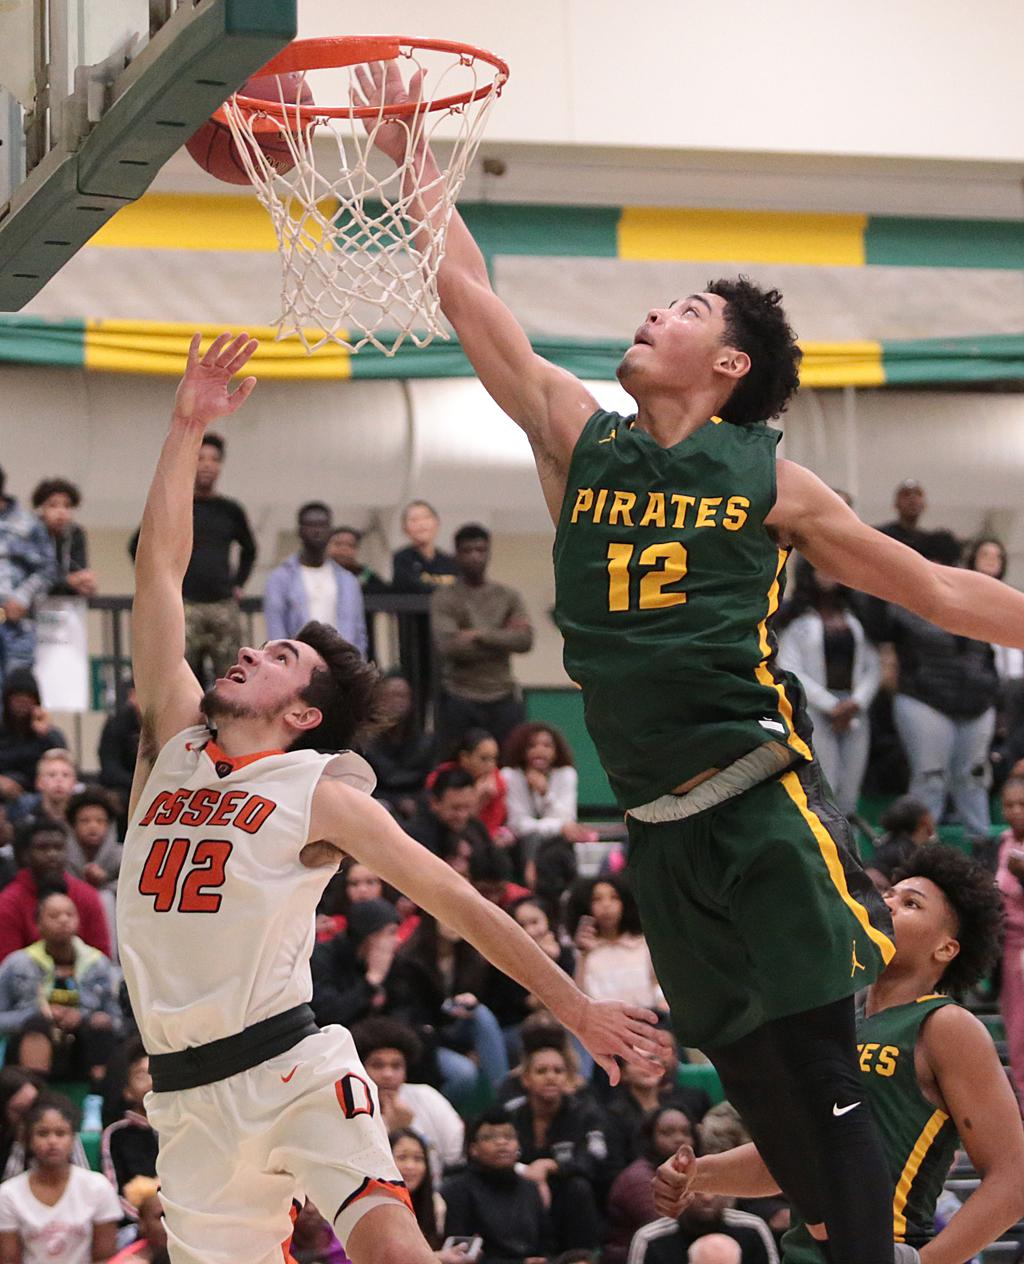 Tommy Chatman (12) reaches for the block on a lay up attempt from Zach Theisen (42). Chatman threw down 14 points for the Pirates as they hand the Orioles a 72-58 loss in the Northwest Suburban matchup. Photo by Cheryl Myers, SportsEngine